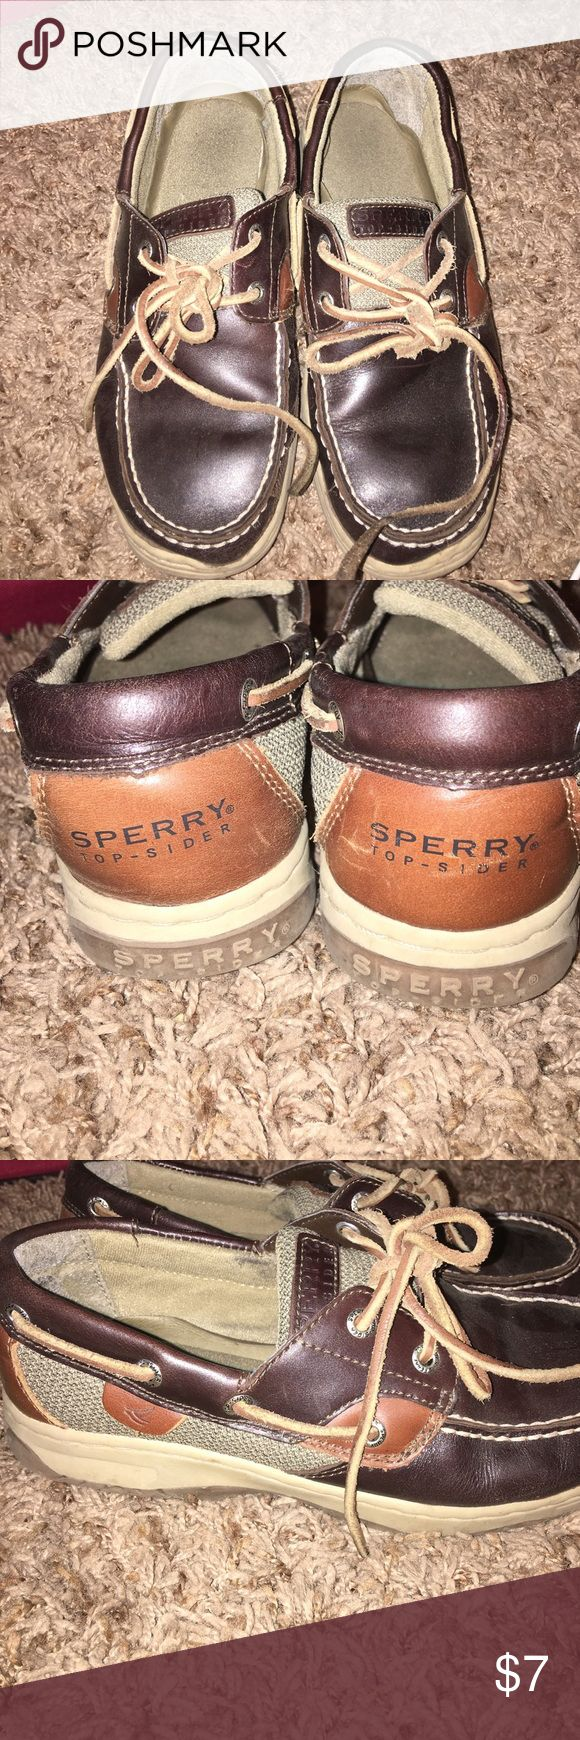 Moving Sale! 4W Boys Sperry Moving Sale! Size 4W Boys Sperry Sperry Shoes